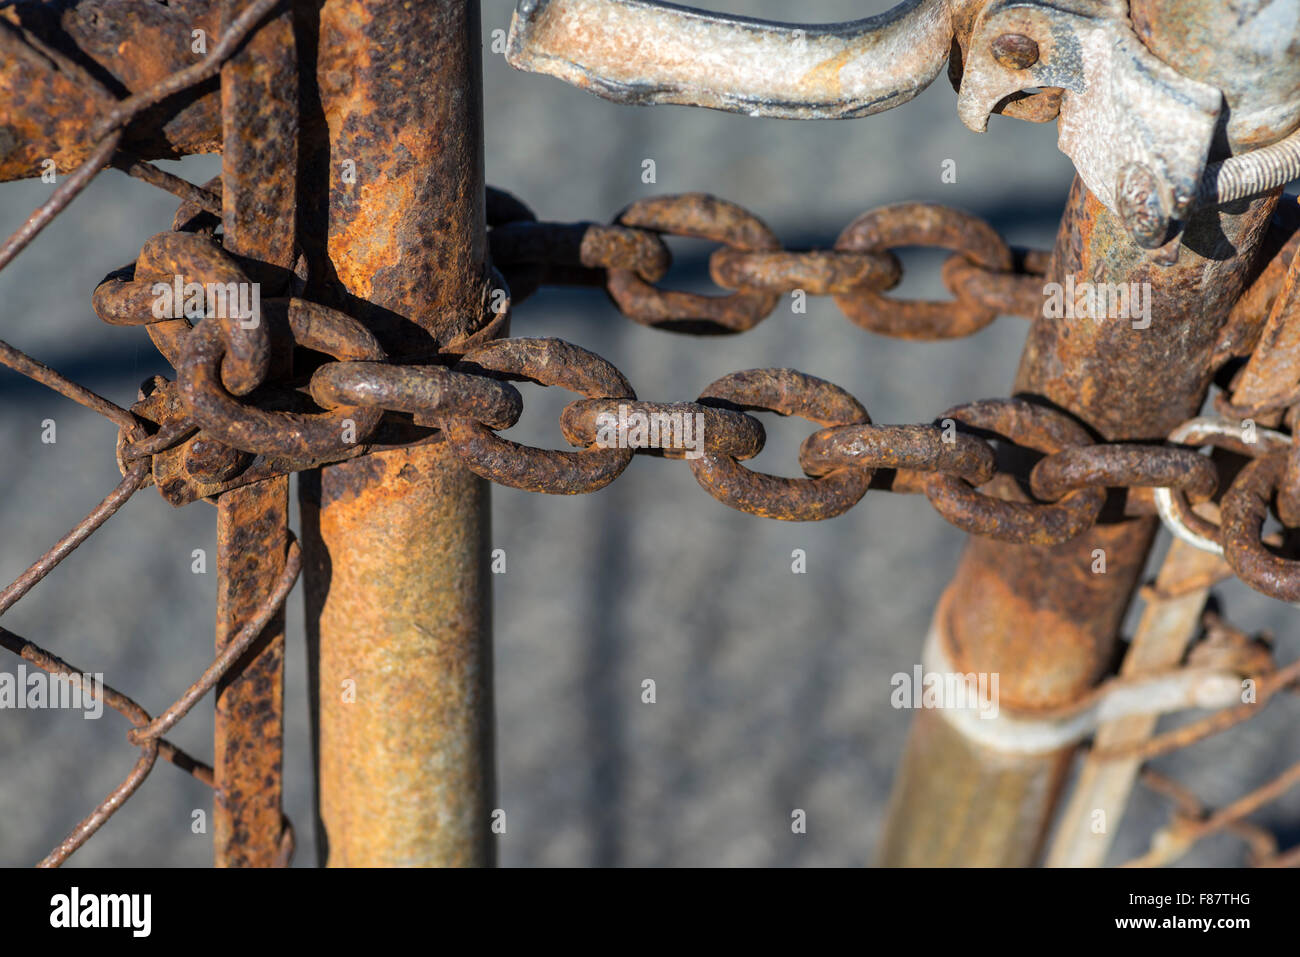 fence post, chain links, metal, chain, rusty, rusted, close up. - Stock Image